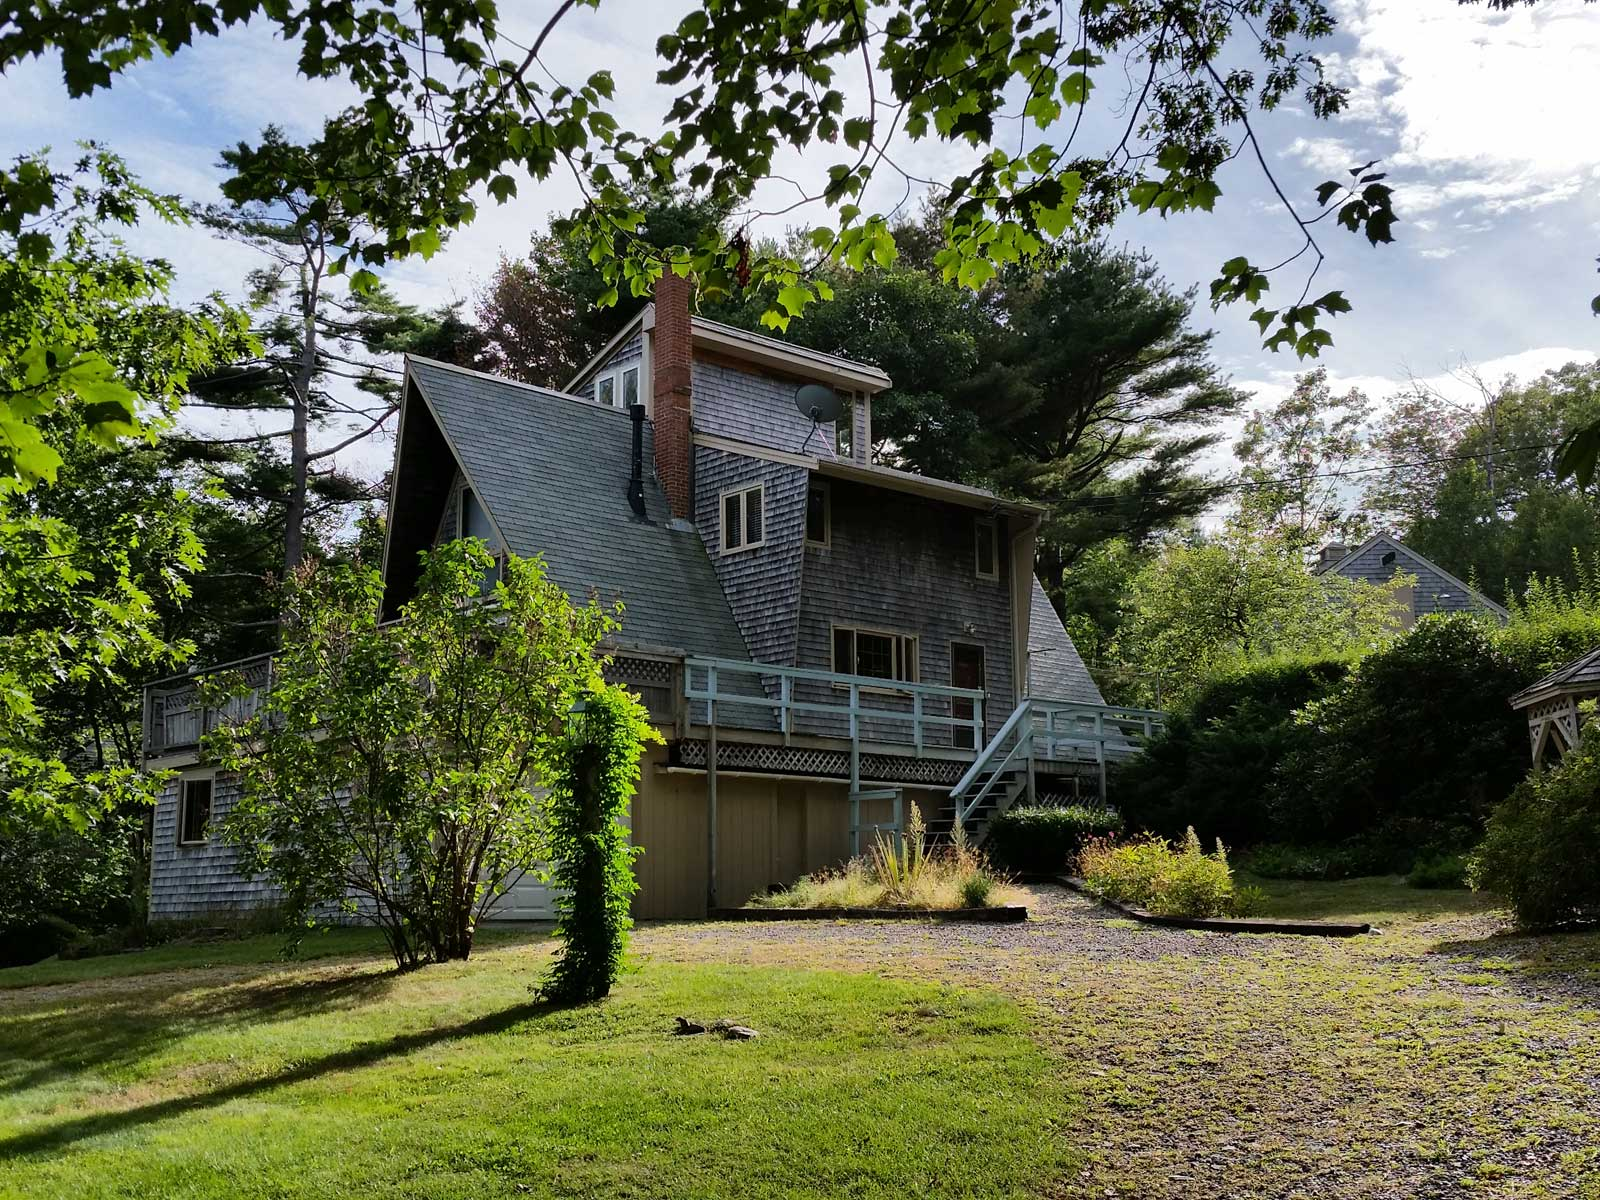 Single Family Home for Sale at Walk to the Beach 173 Shore Road York, Maine 03902 United States